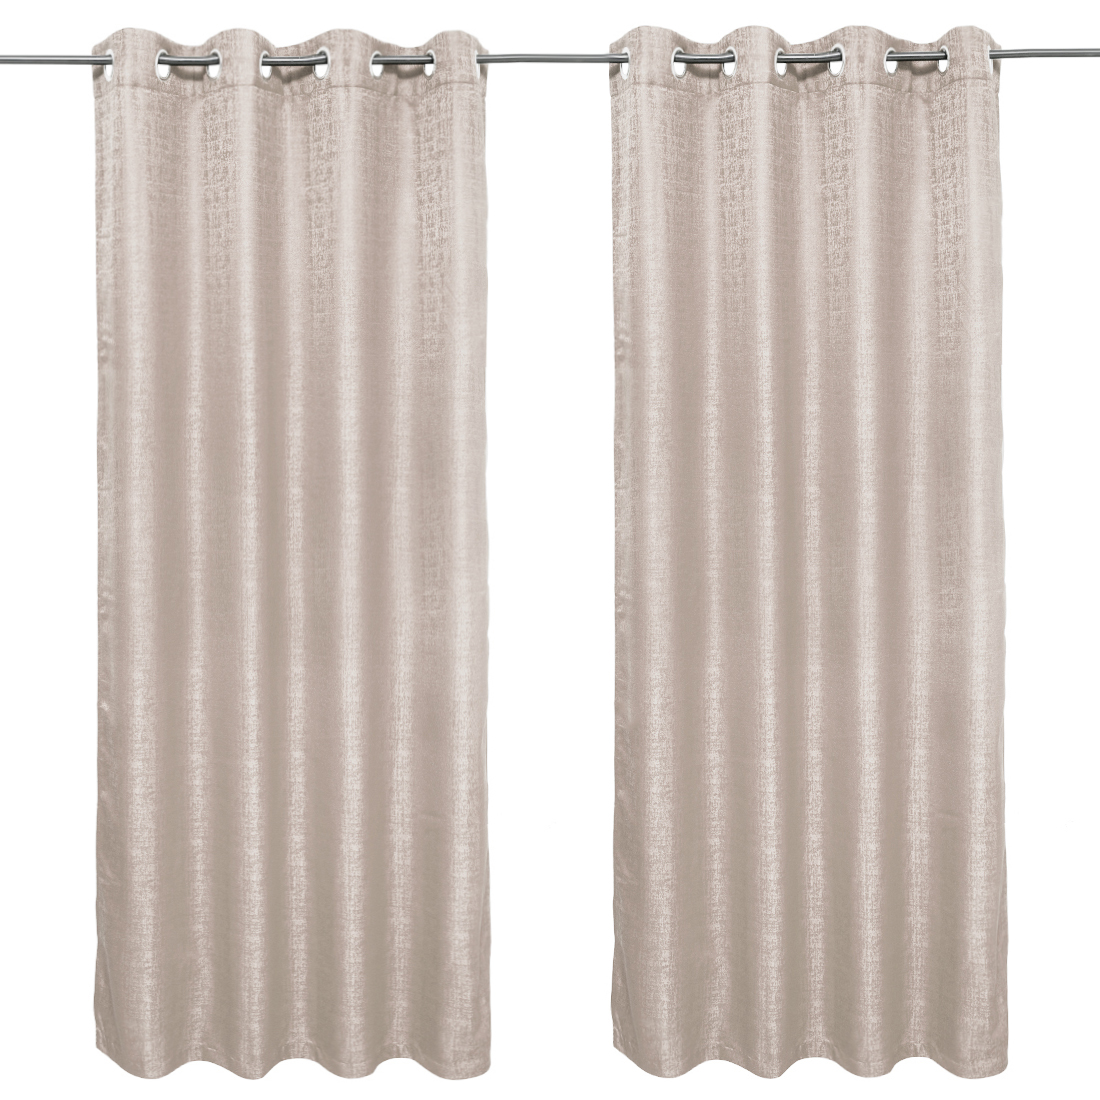 Nora Solid set of 2 Polyester Door Curtains in Beige Colour by Living Essence